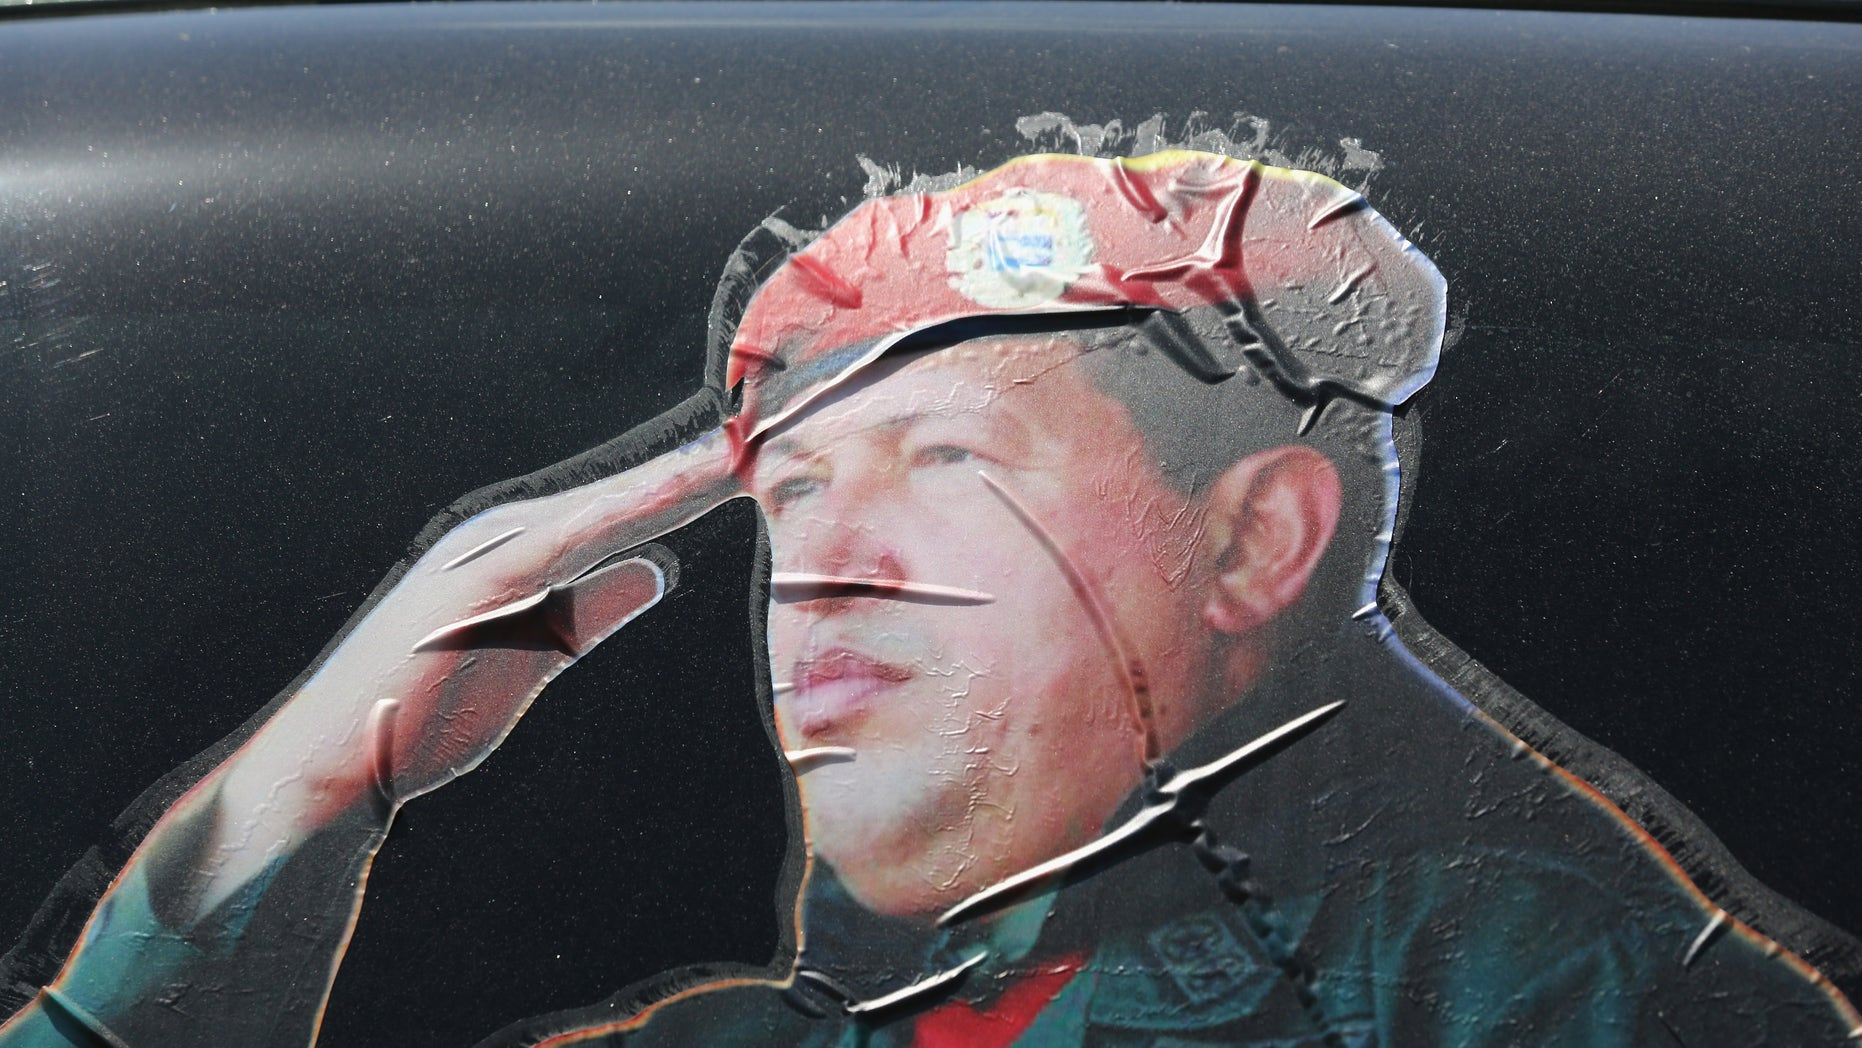 CARACAS, VENEZUELA - MARCH 04:  A sticker on a car window honors former Venezuelan president Hugo Chavez near the military barracks where Chavez is entombed on March 4, 2014 in Caracas, Venezuela. Workers made last minute preparations for Wednesday's ceremony marking the first anniversary of Chavez' death on March 5, 2013. The anniversary has been marred by three weeks protests against the government of Chavez' chosen successor Nicolas Maduro.  (Photo by John Moore/Getty Images)